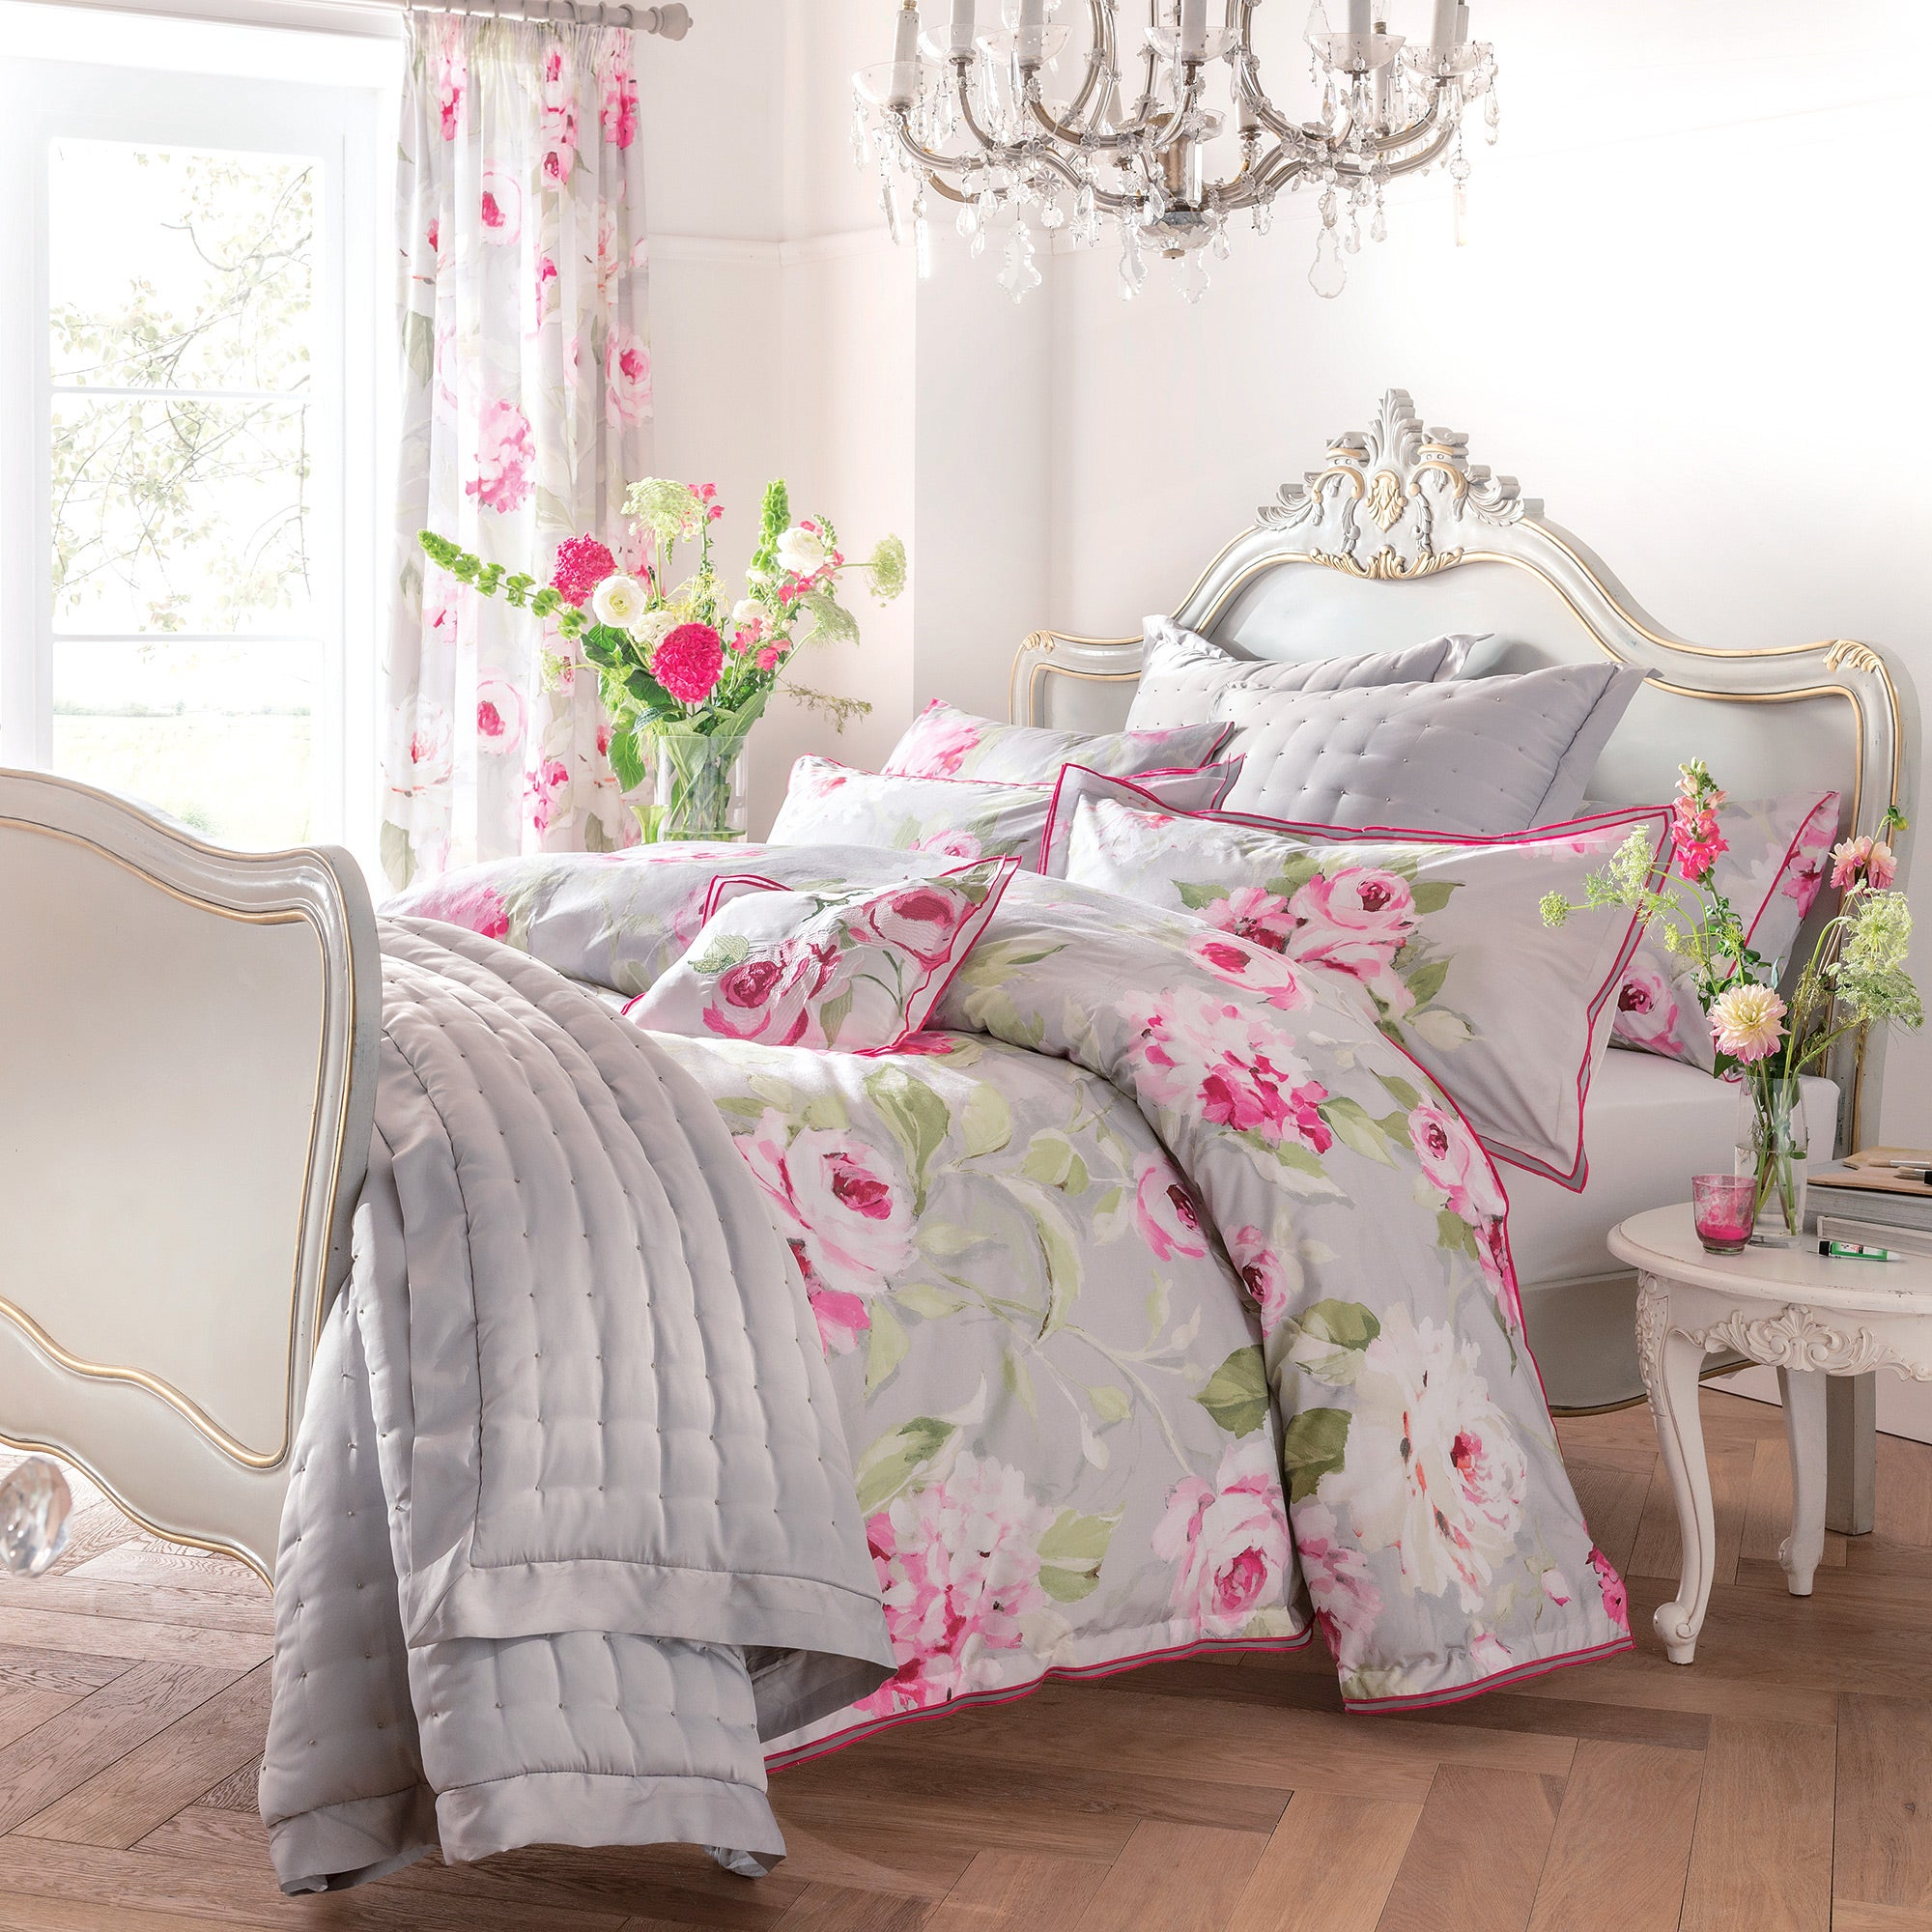 dorma pink nancy collection duvet cover dunelm. Black Bedroom Furniture Sets. Home Design Ideas